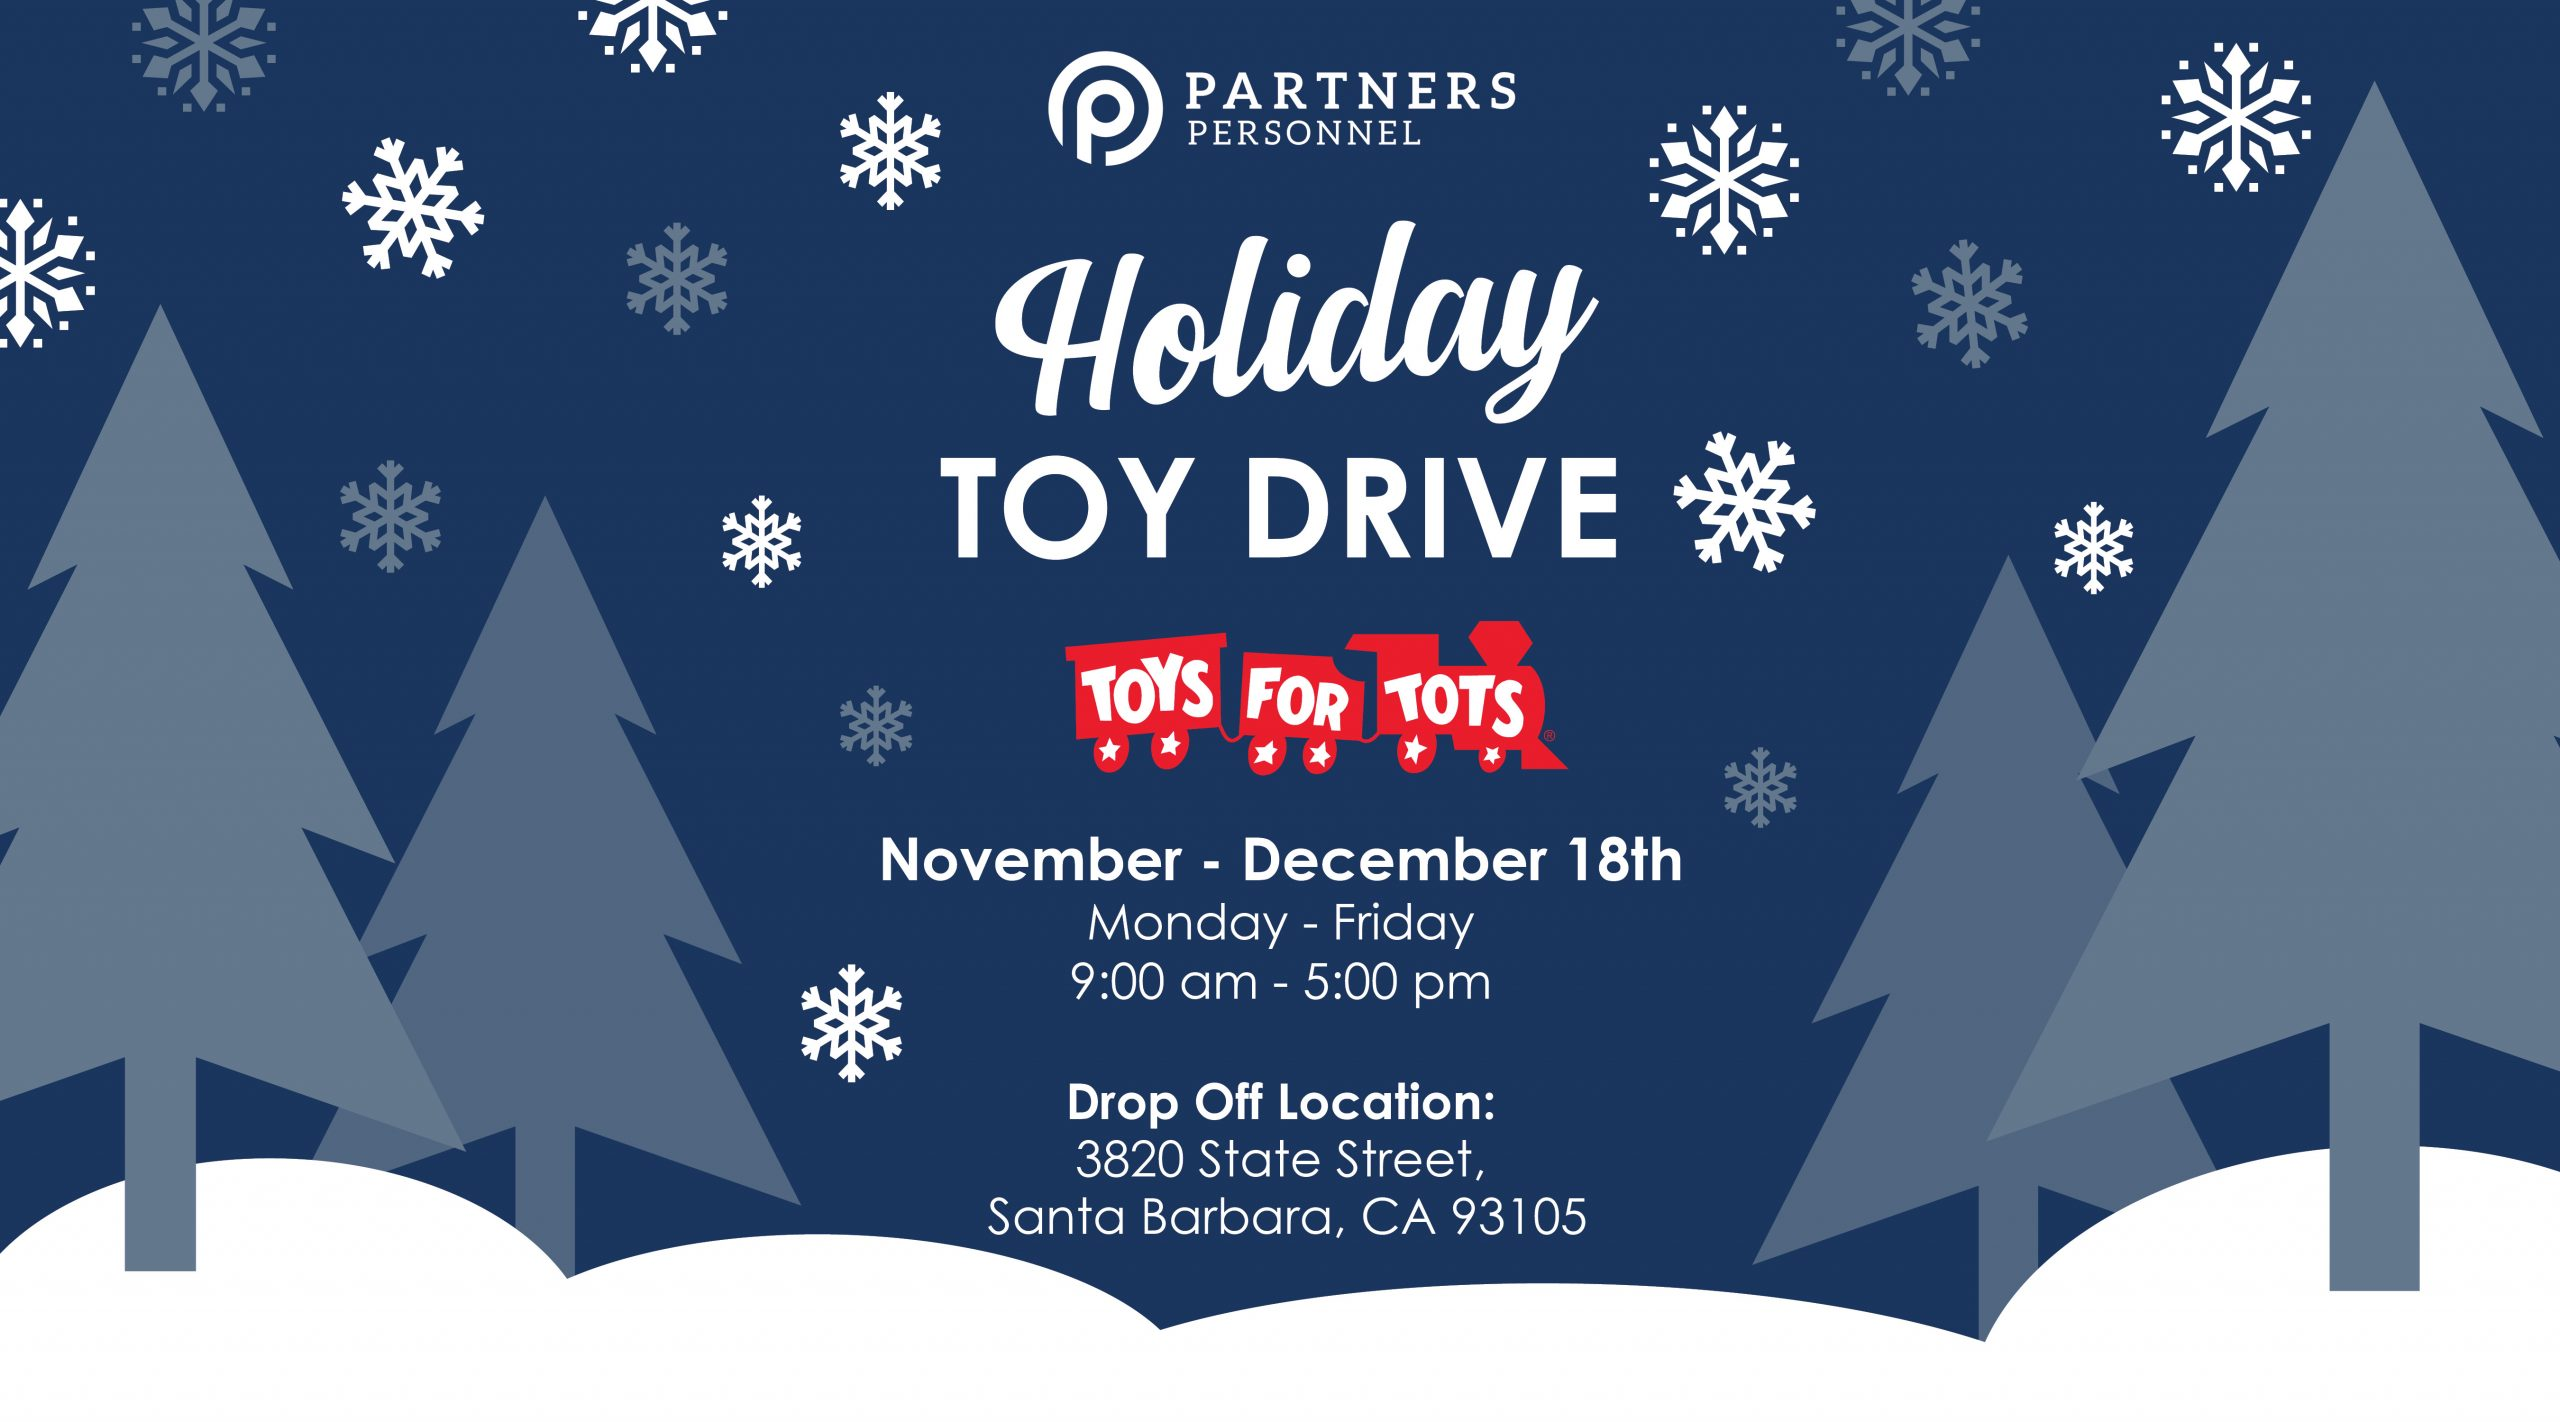 Toys for Tots | Holiday Toy Drive